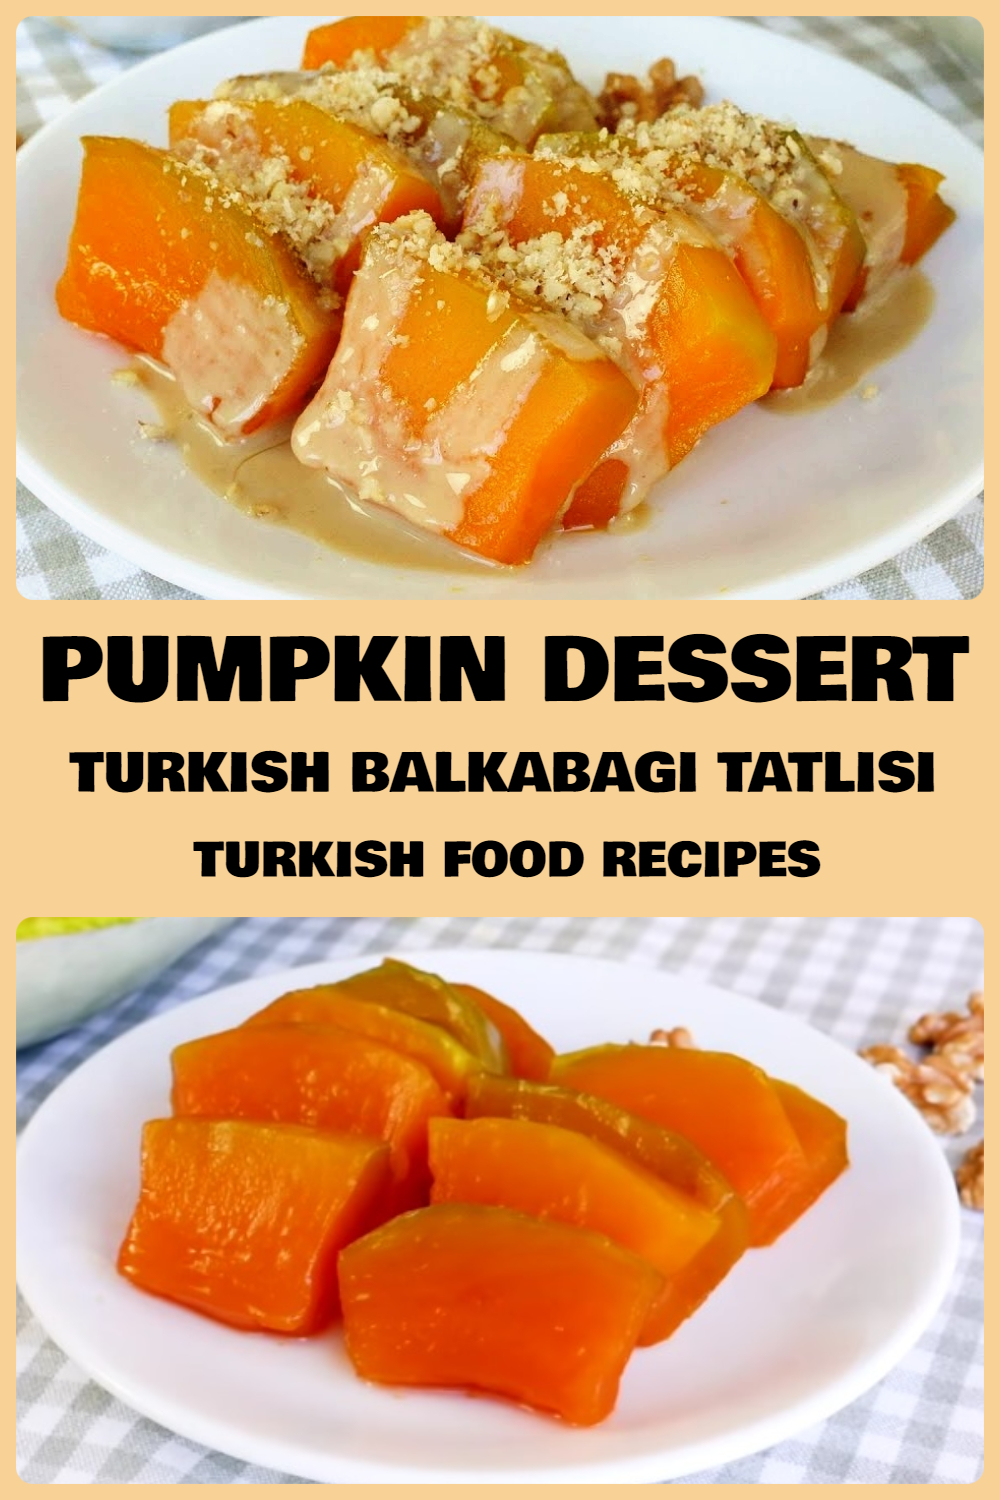 Pumpkin-Dessert-Recipe-Turkish-Kabak-Tatlisi.